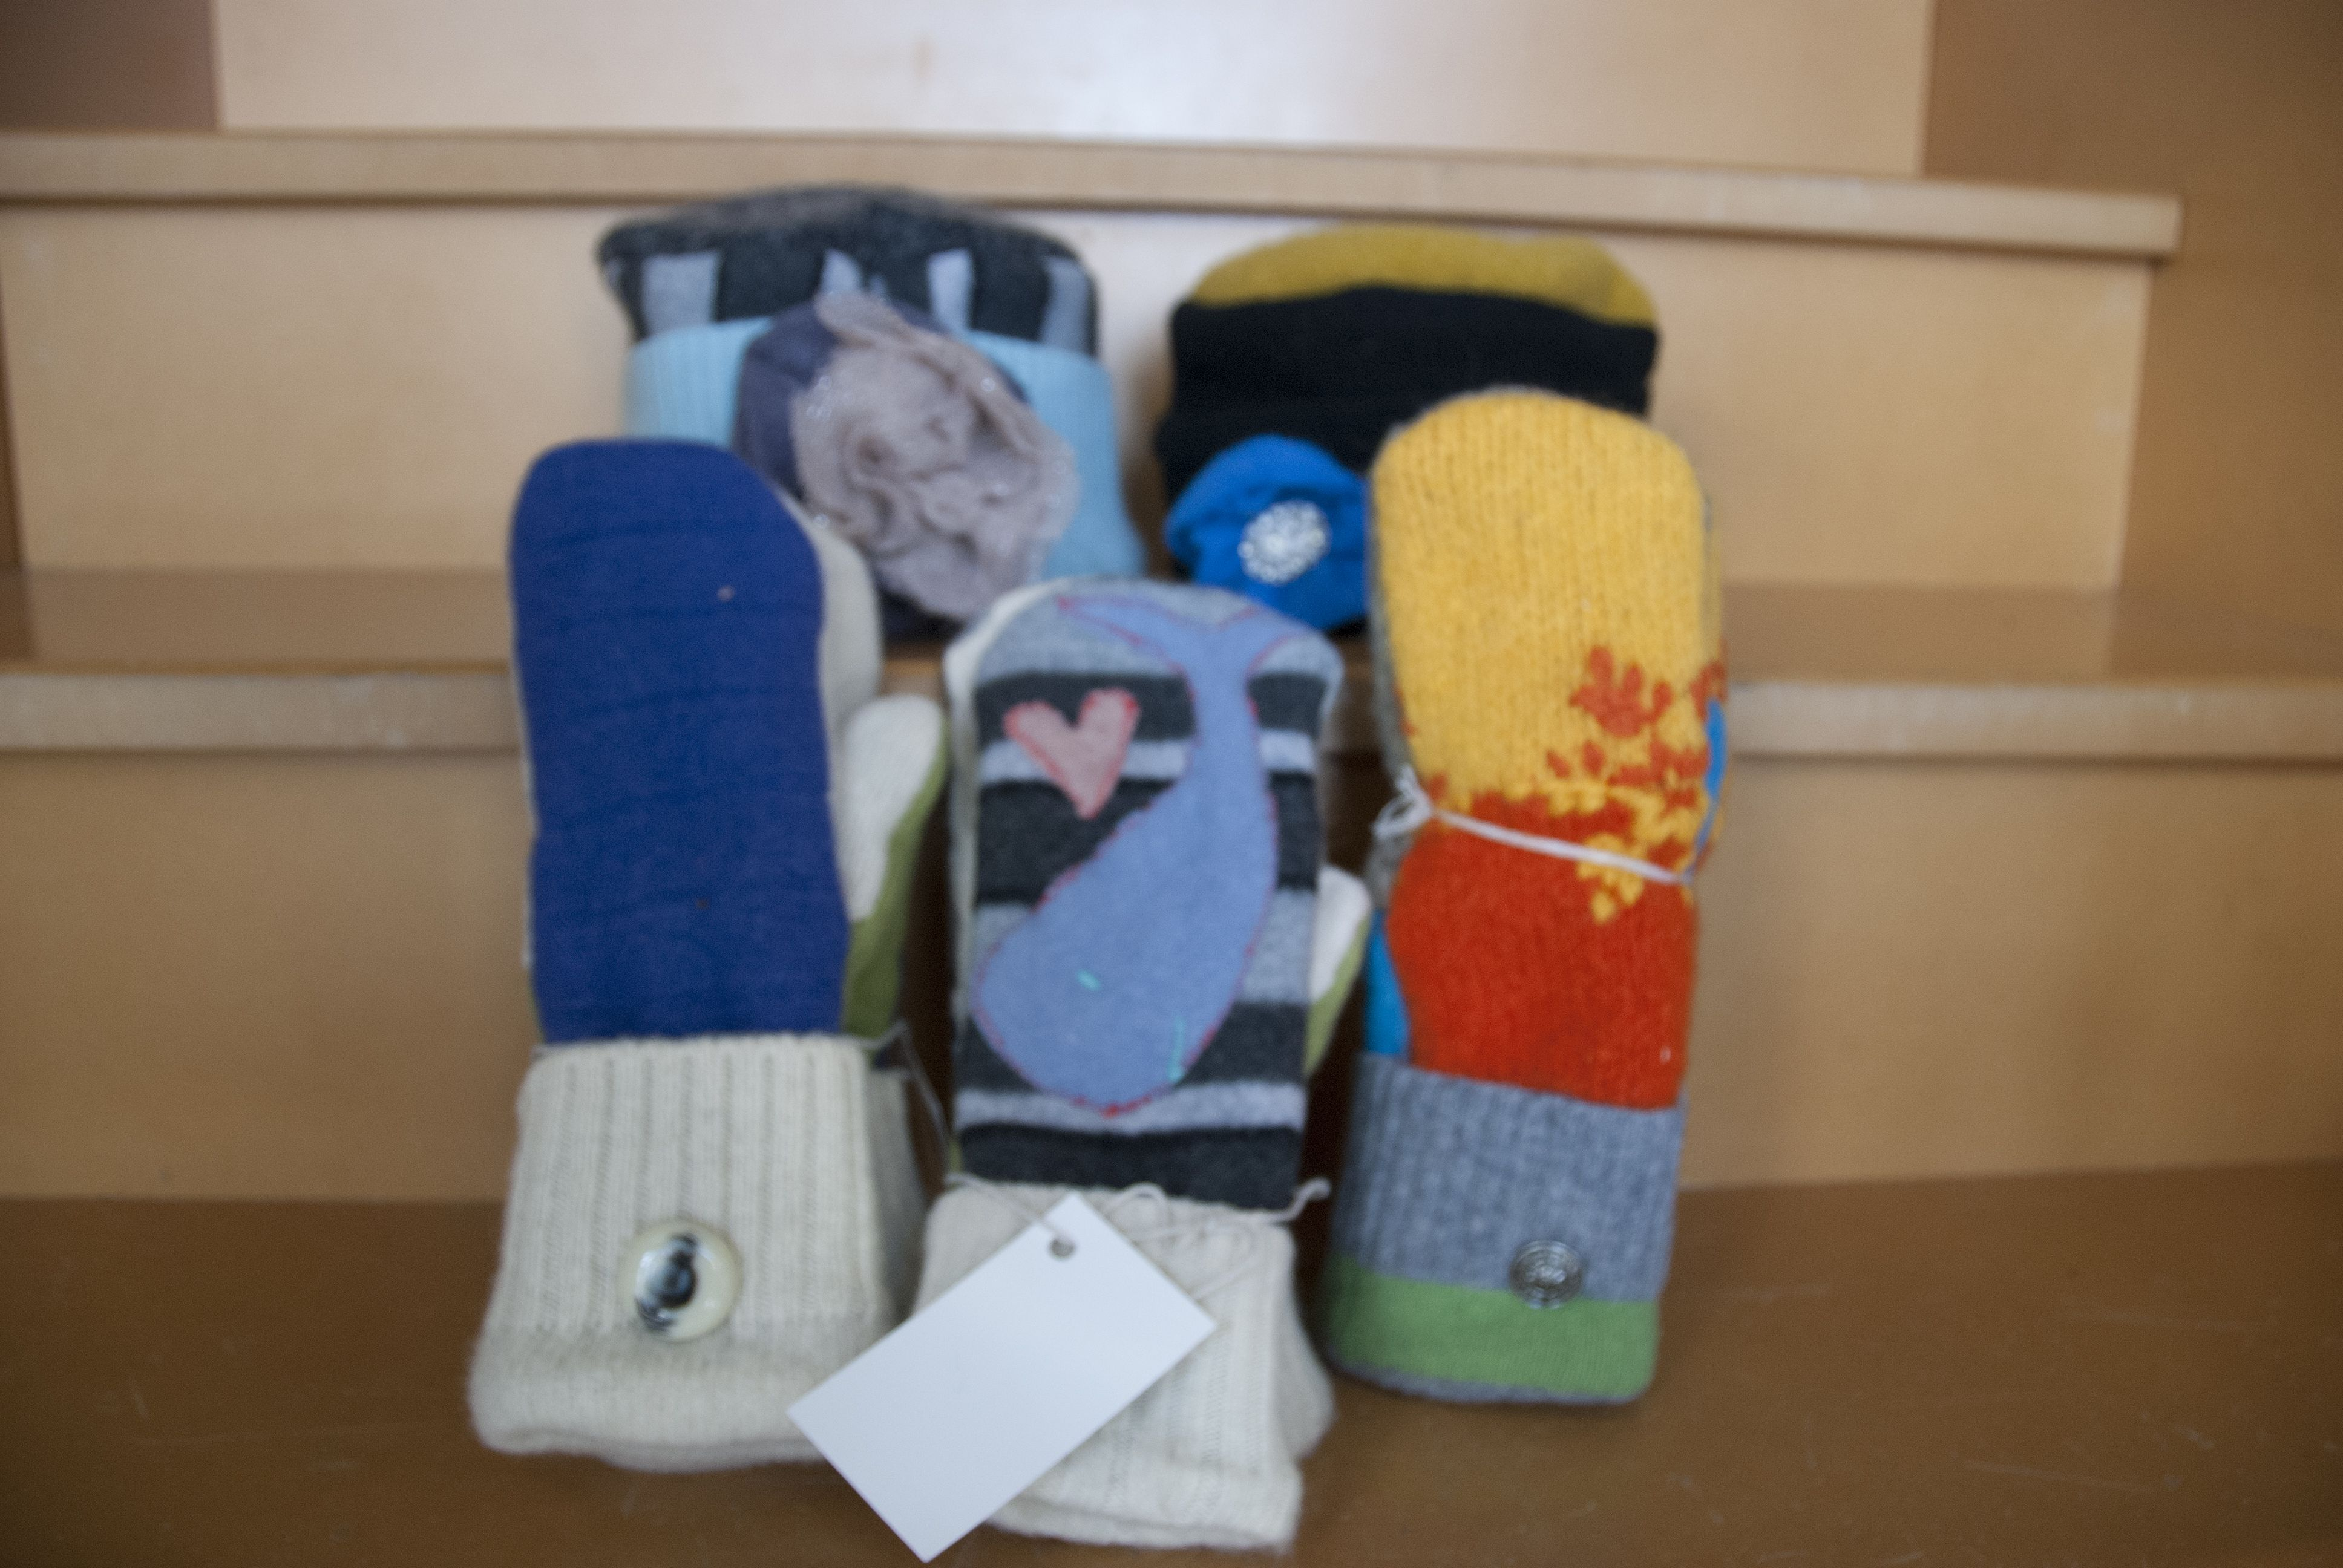 Laura Paulette Altoona Iowa Handmade Fleece Hats Mittens And Slippers Sold At Green Goods For The Home Fleece Hats Sweater Mittens Recycled Sweater